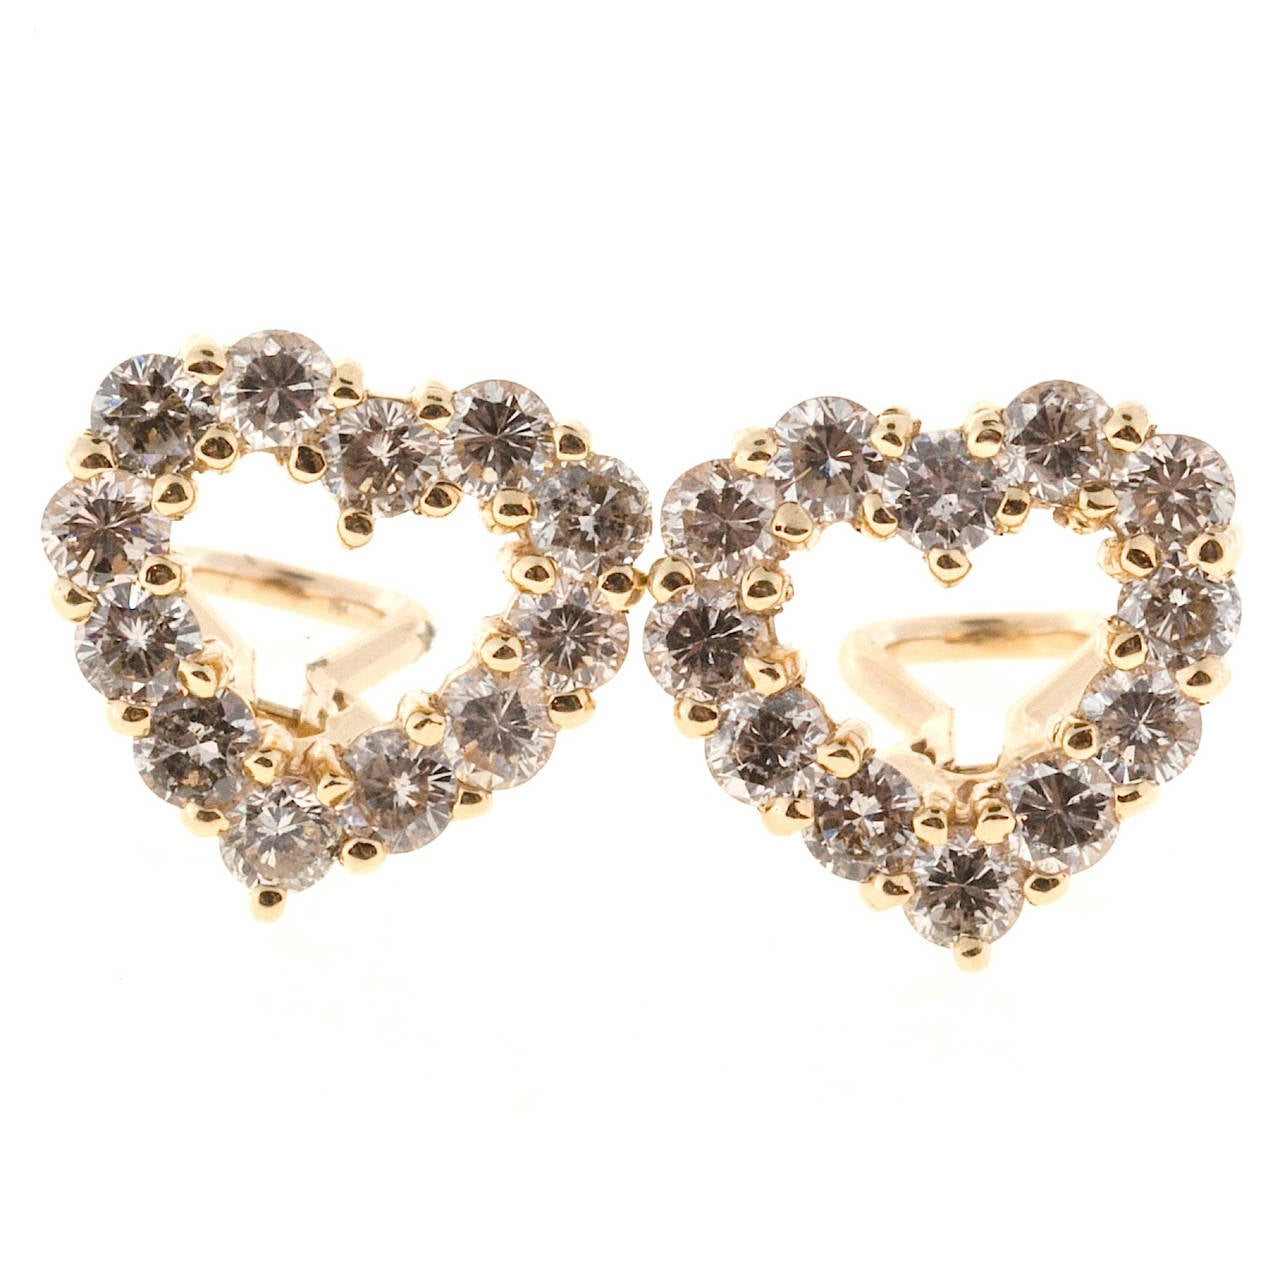 Diamond Gold Heart Shaped Earrings In Good Condition For Sale In Stamford, CT